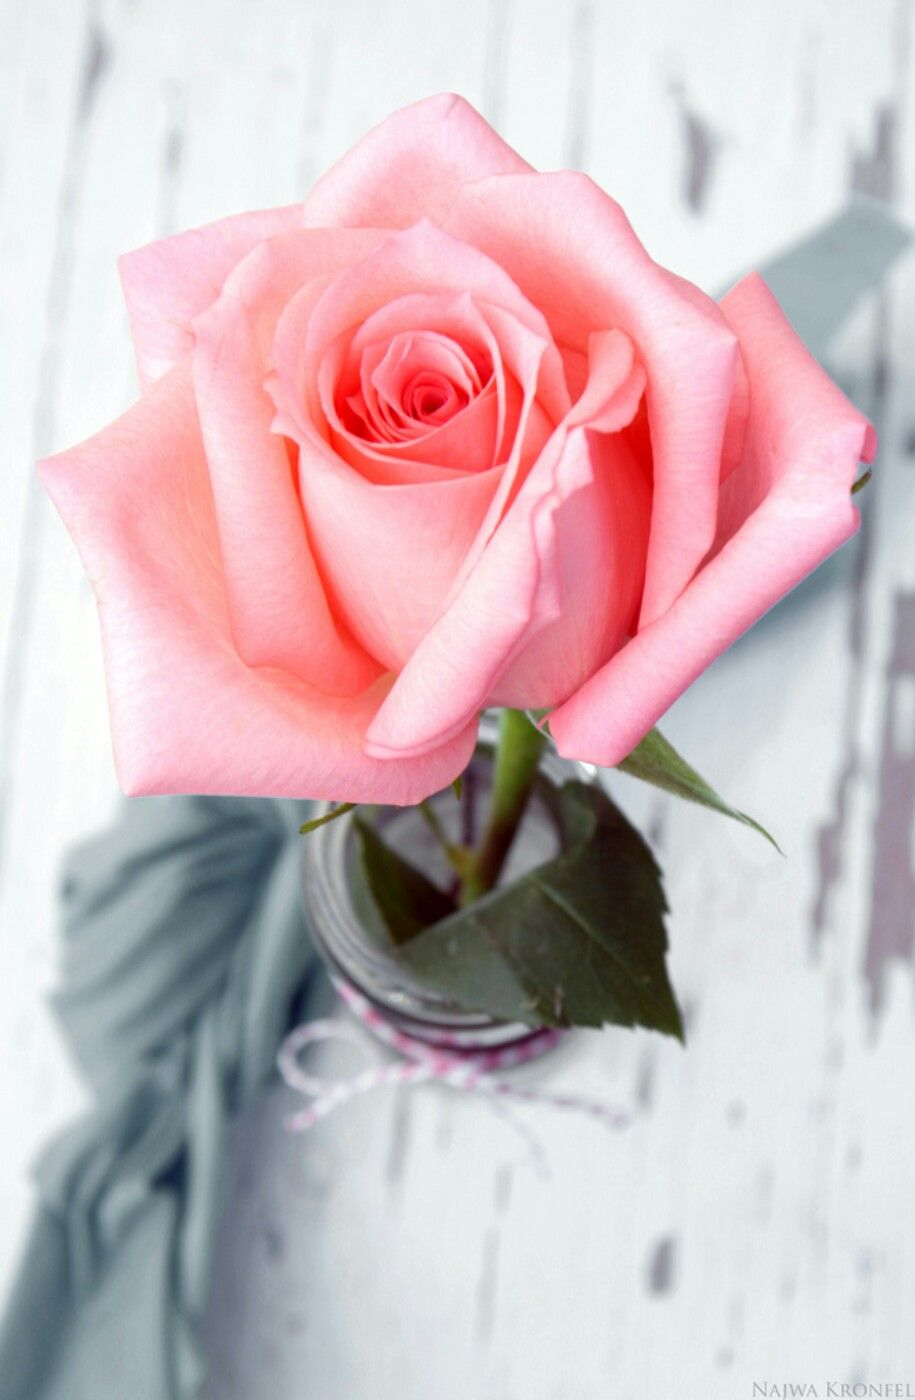 Pink Rose Flower Tumblr Banan Pinterest Pink Rose Flower